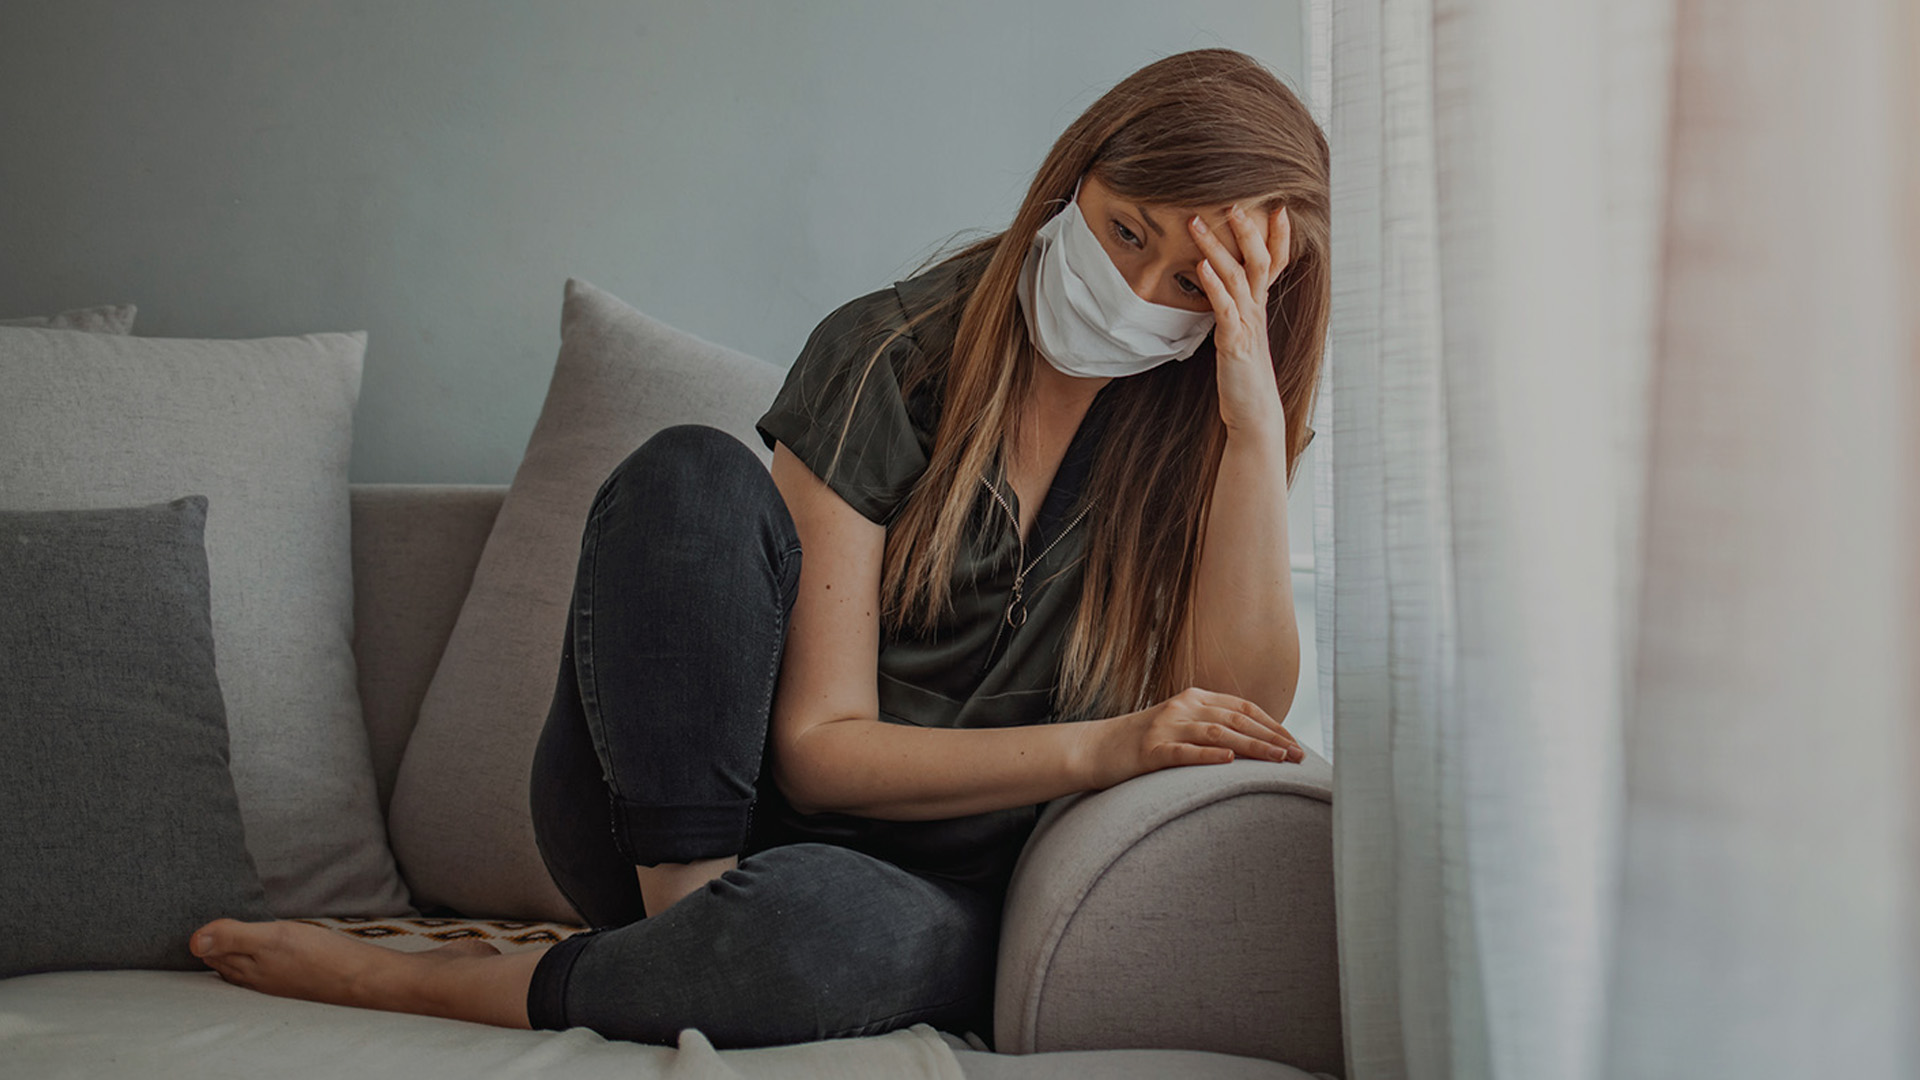 Young woman on a couch wiht a mask